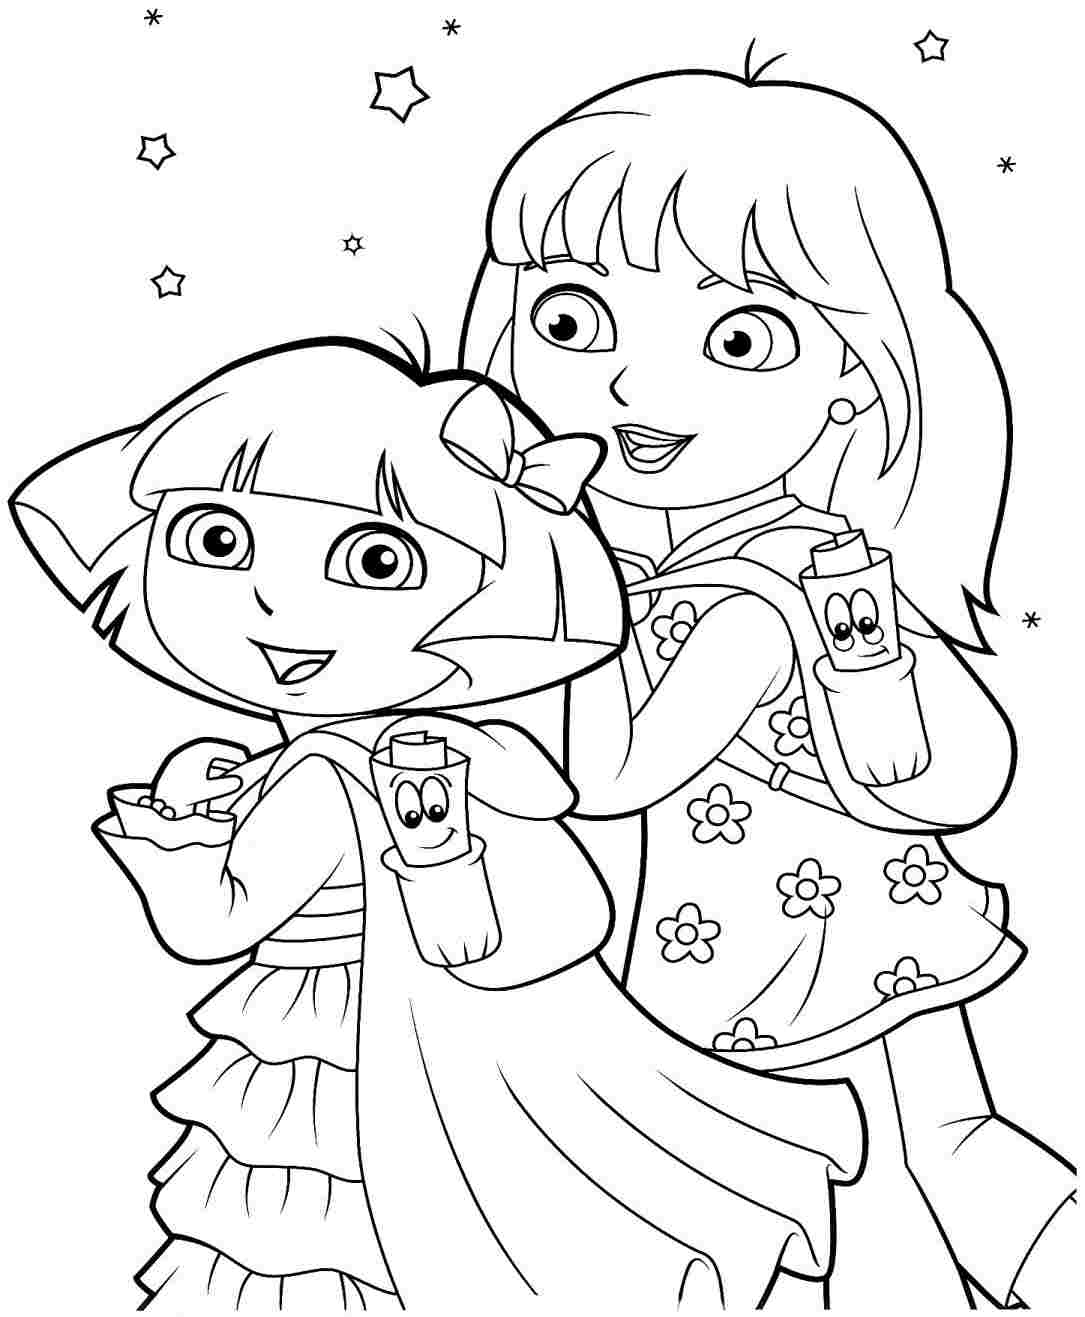 dora and friends coloring pages - printable coloring pages dora and friends into the city sketch templates